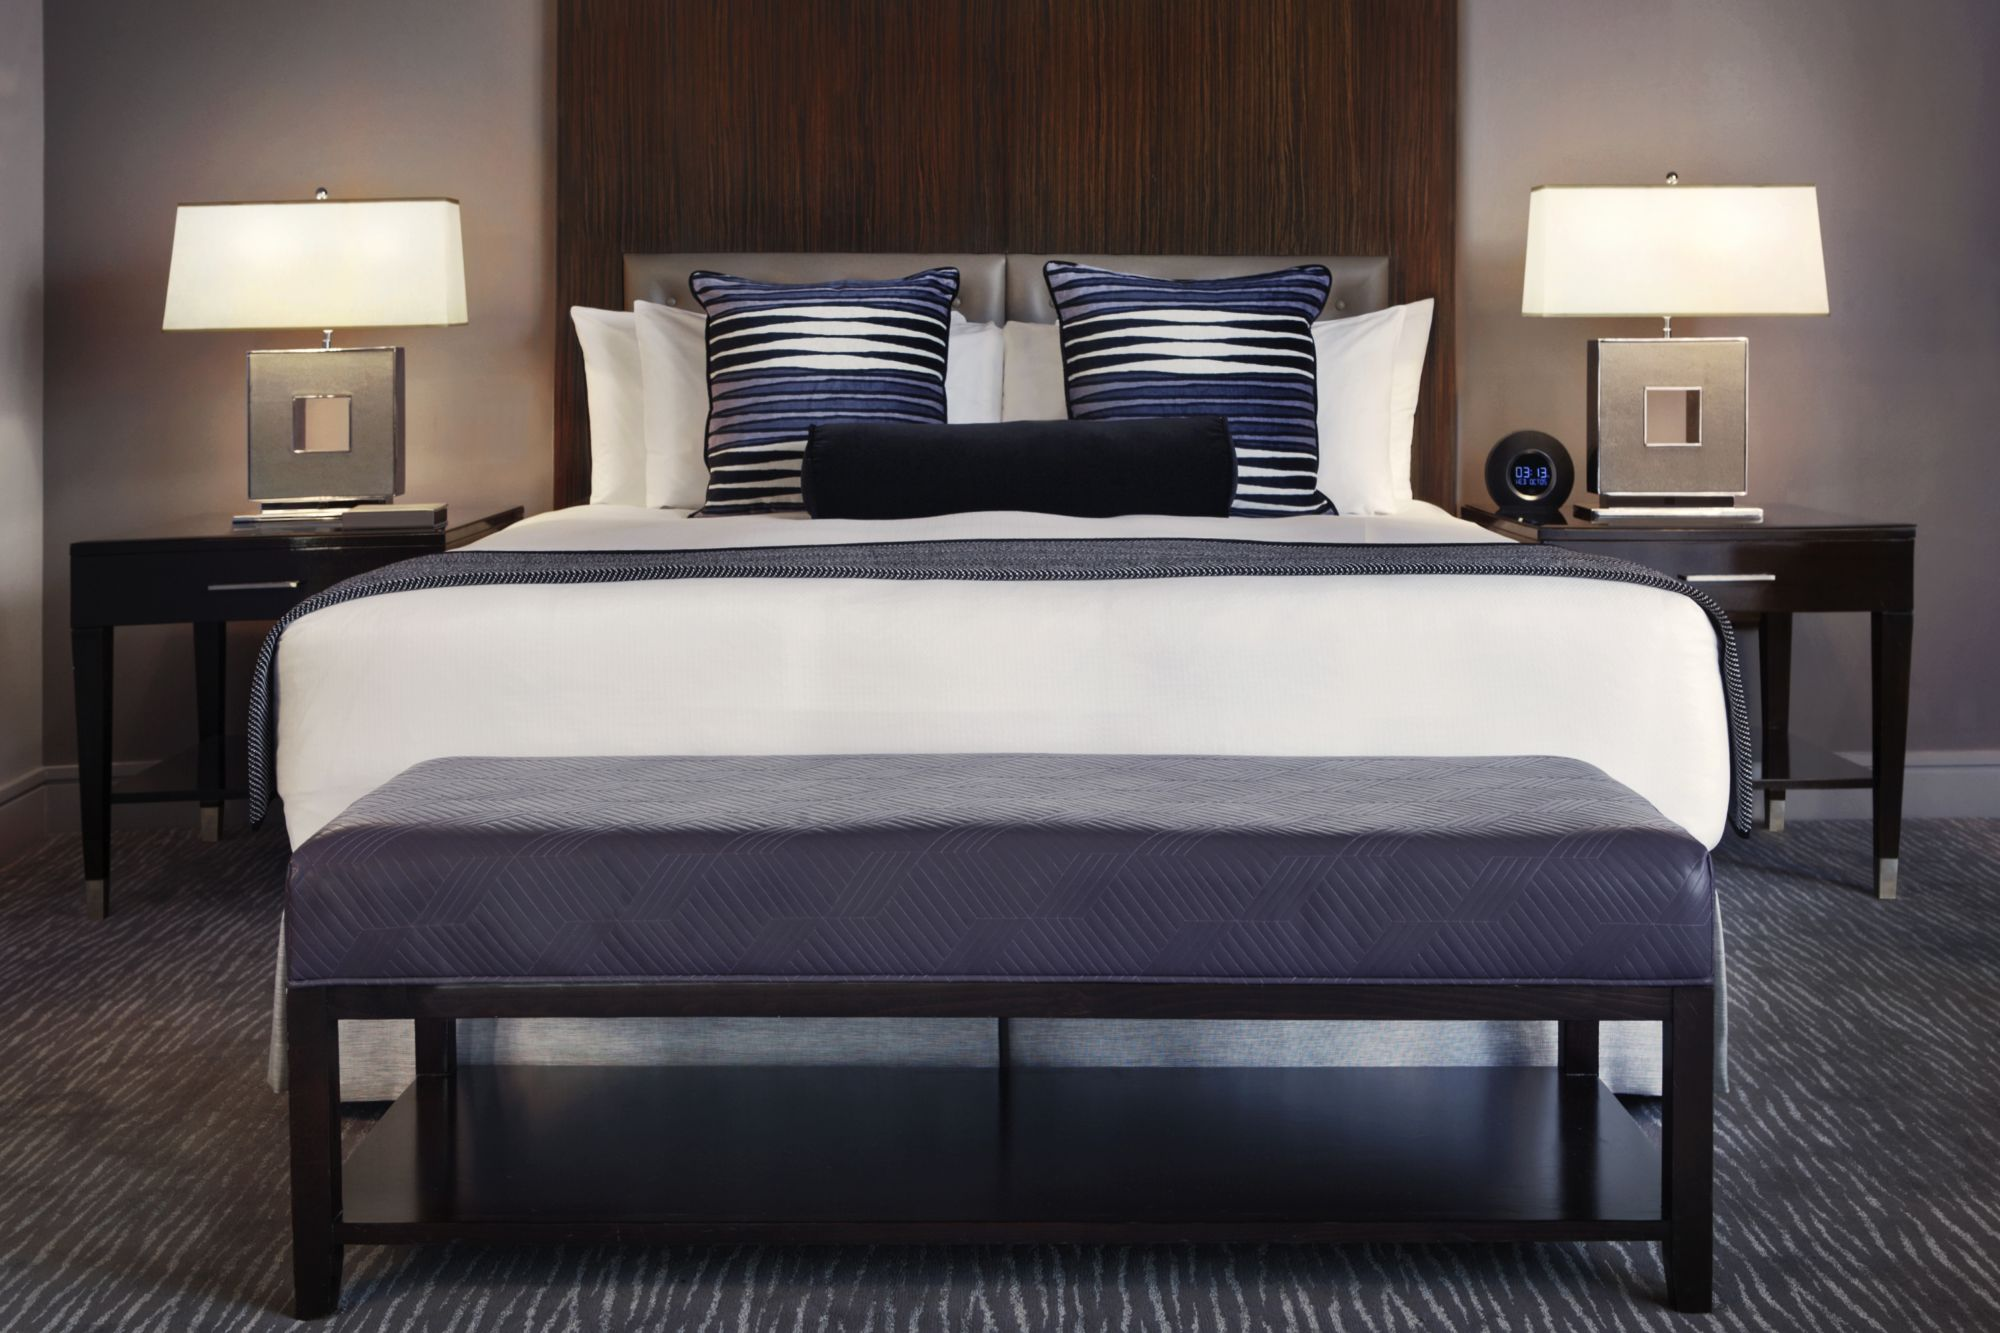 Suites in chicago trump chicago grand deluxe suites 2 bedroom suites in chicago for Two bedroom suites in chicago